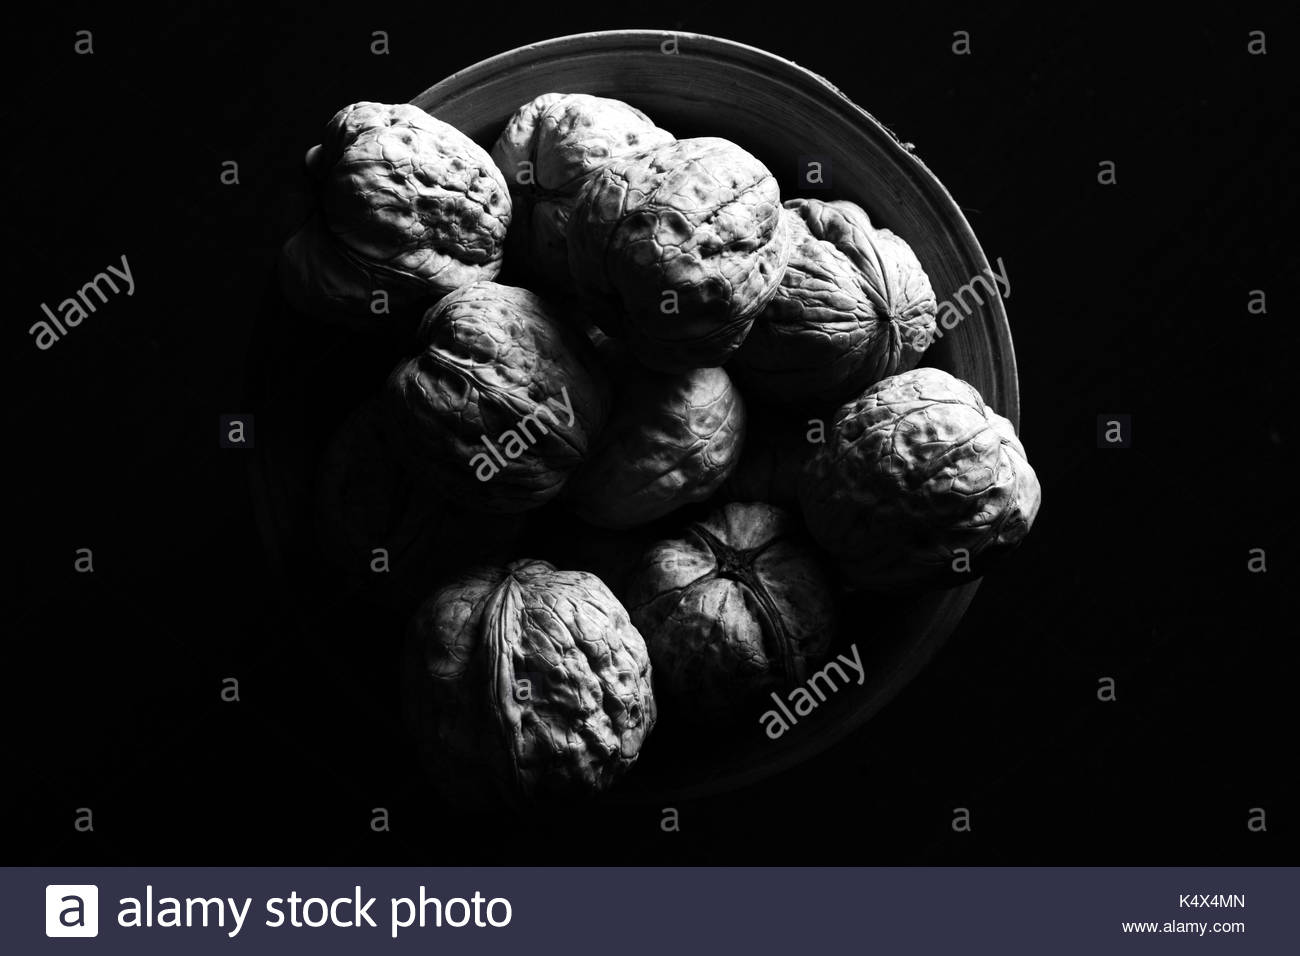 a bowl full of nuts - Stock Image